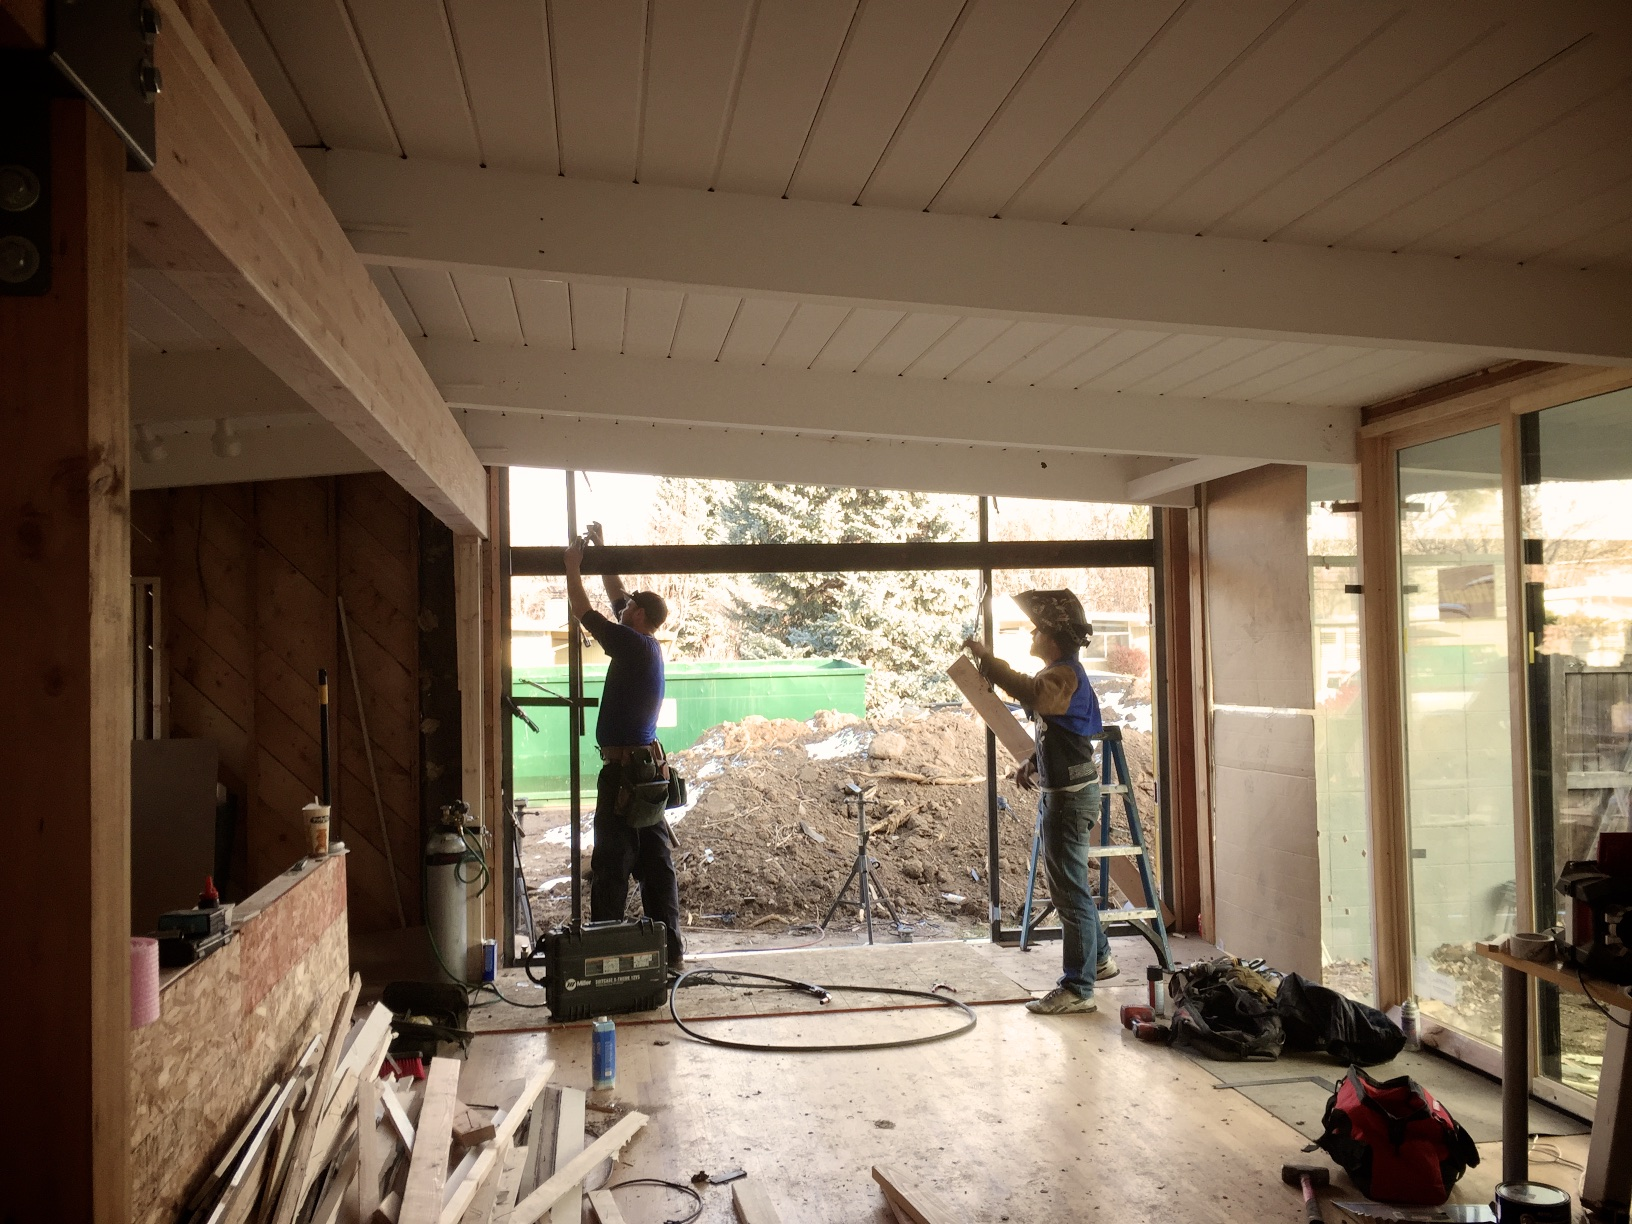 New opening out to the front. Sam and Jake from  Corvus DesignBuild  are fabricating the steel frame for new glass panels out to the front.